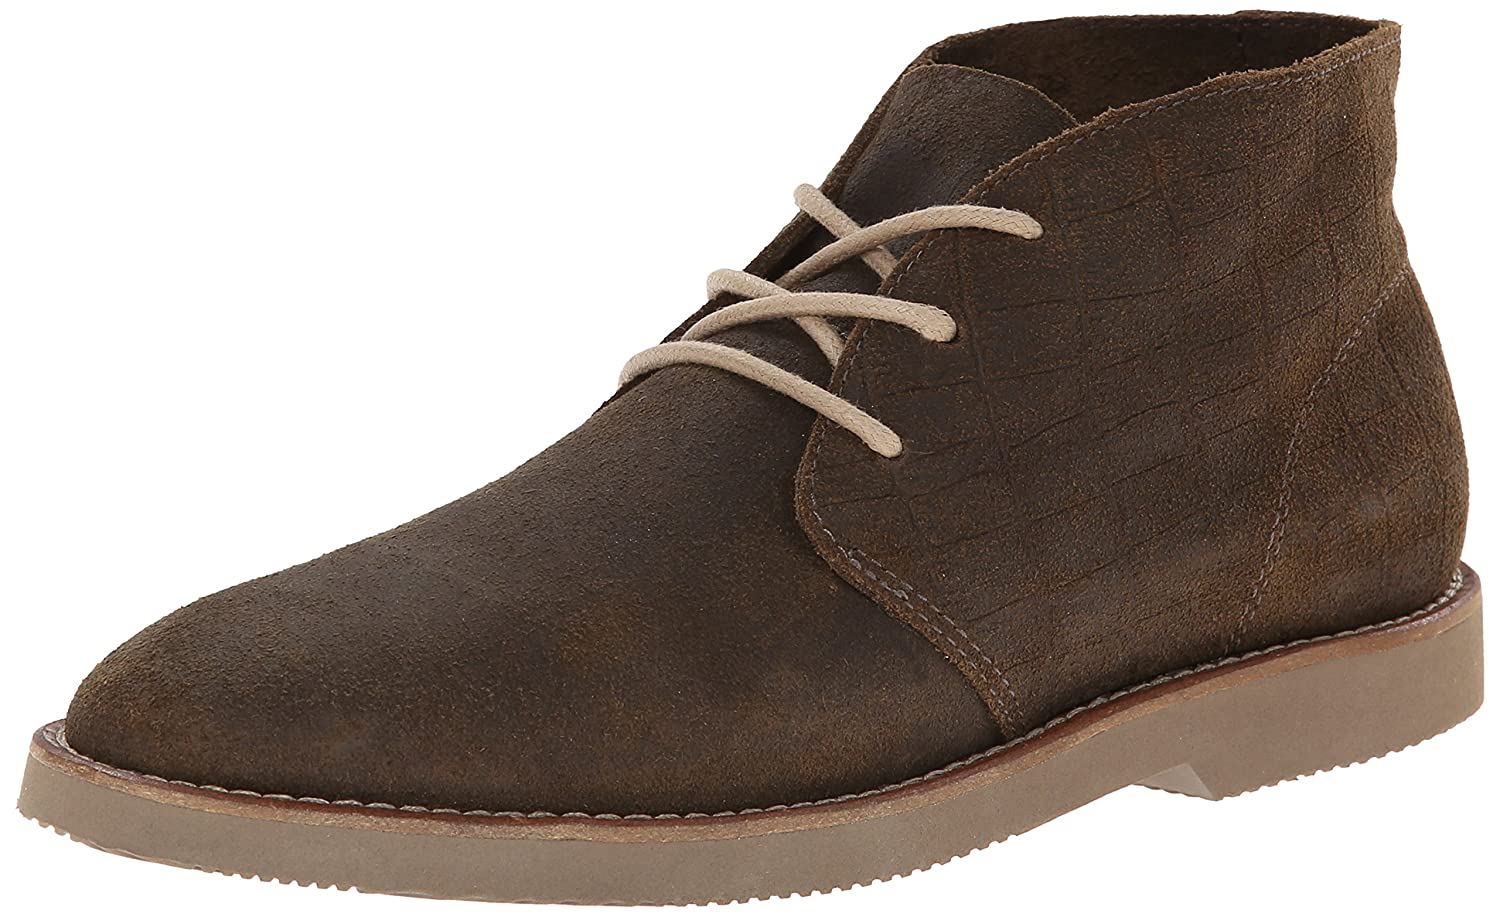 Women's 12/67 3 Eye Chukka Boot